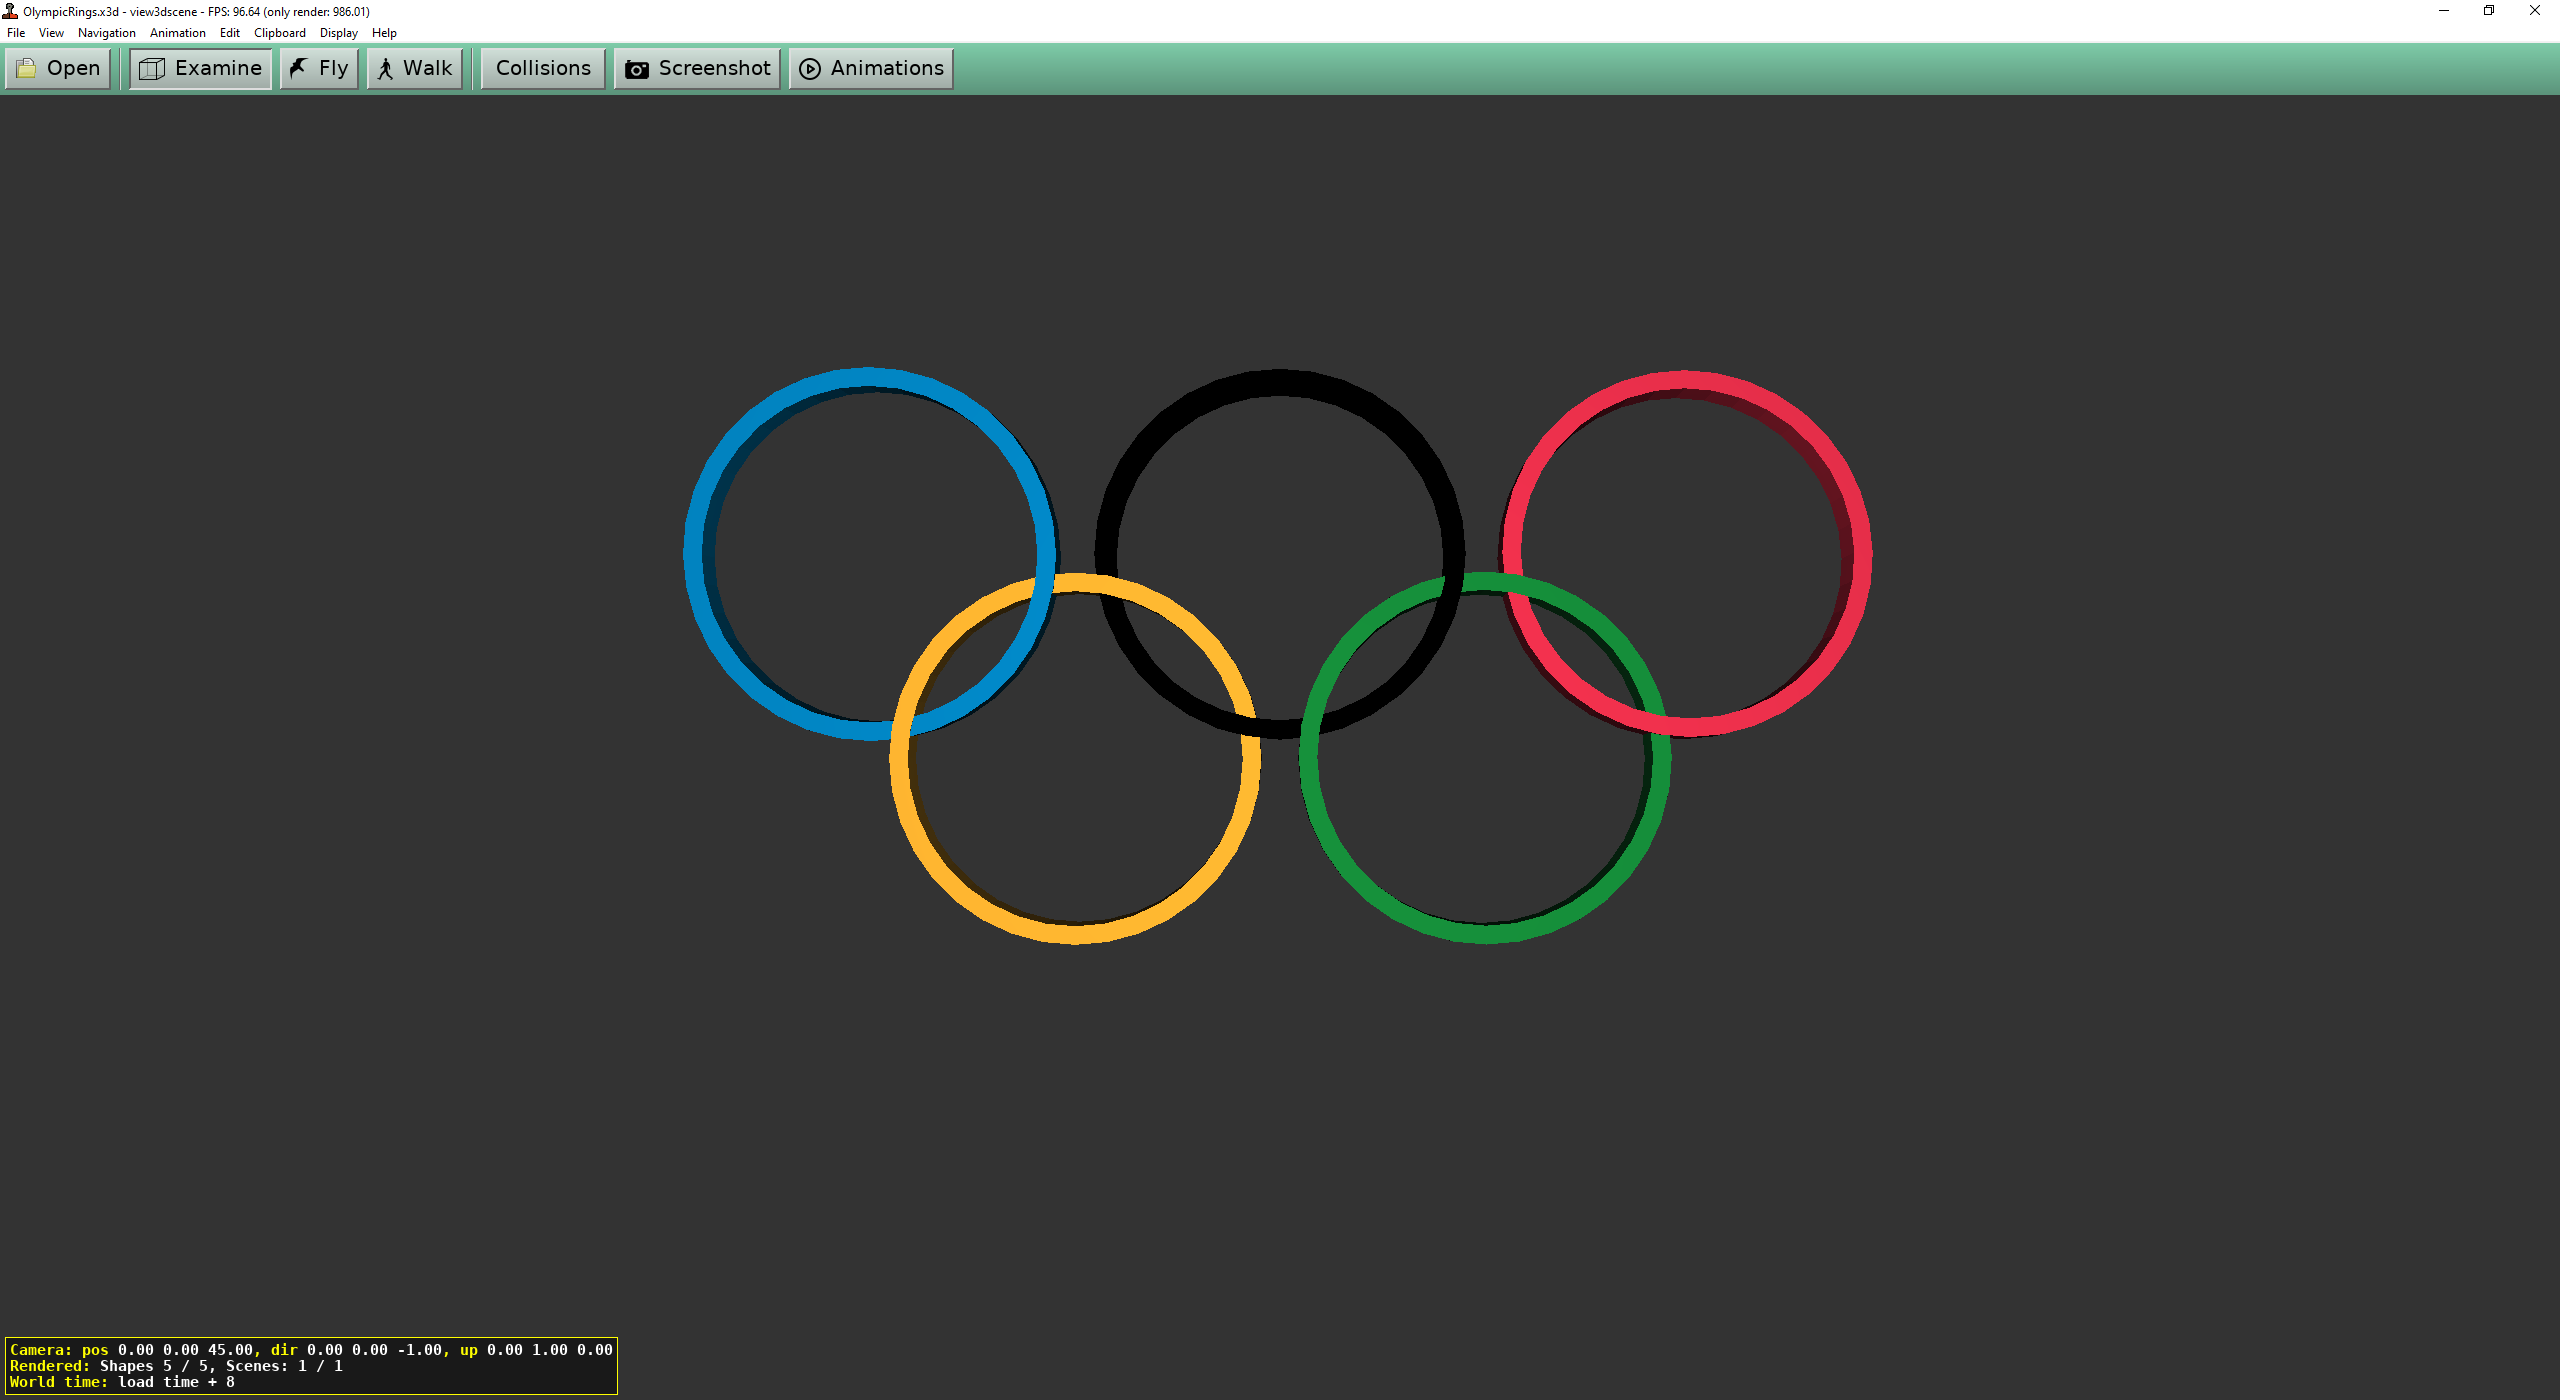 BrennenstuhlTobias/Screenshots/Player/Olympic Rings/OlympicRings.view3DScene.png